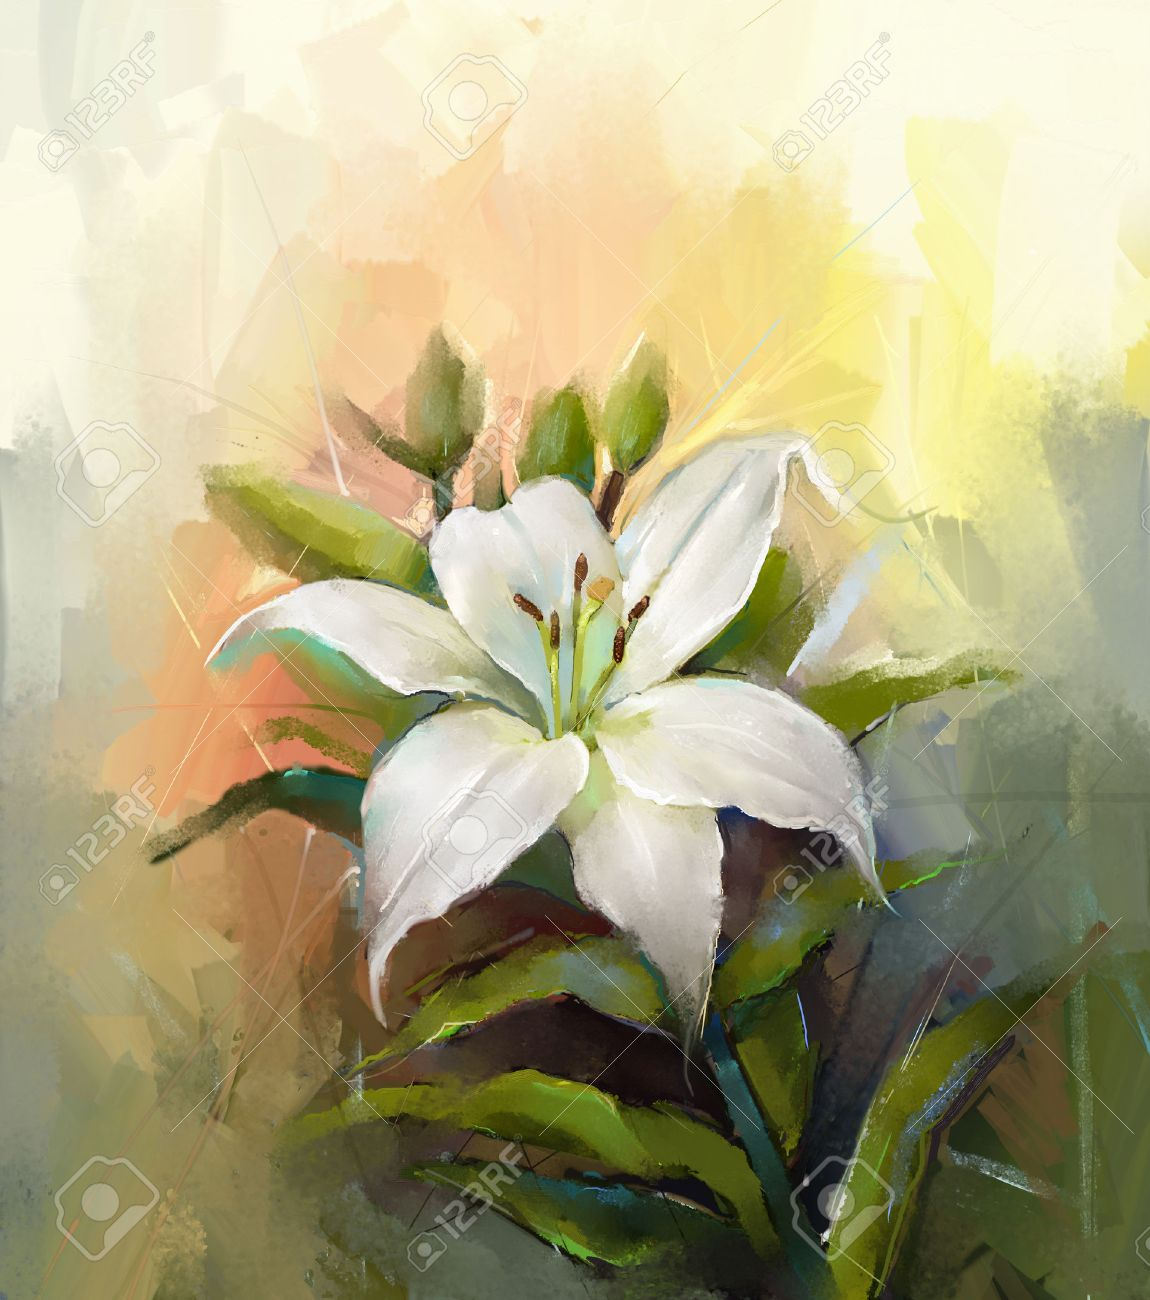 White Lily Flowerflower Oil Painting Stock Photo Picture And